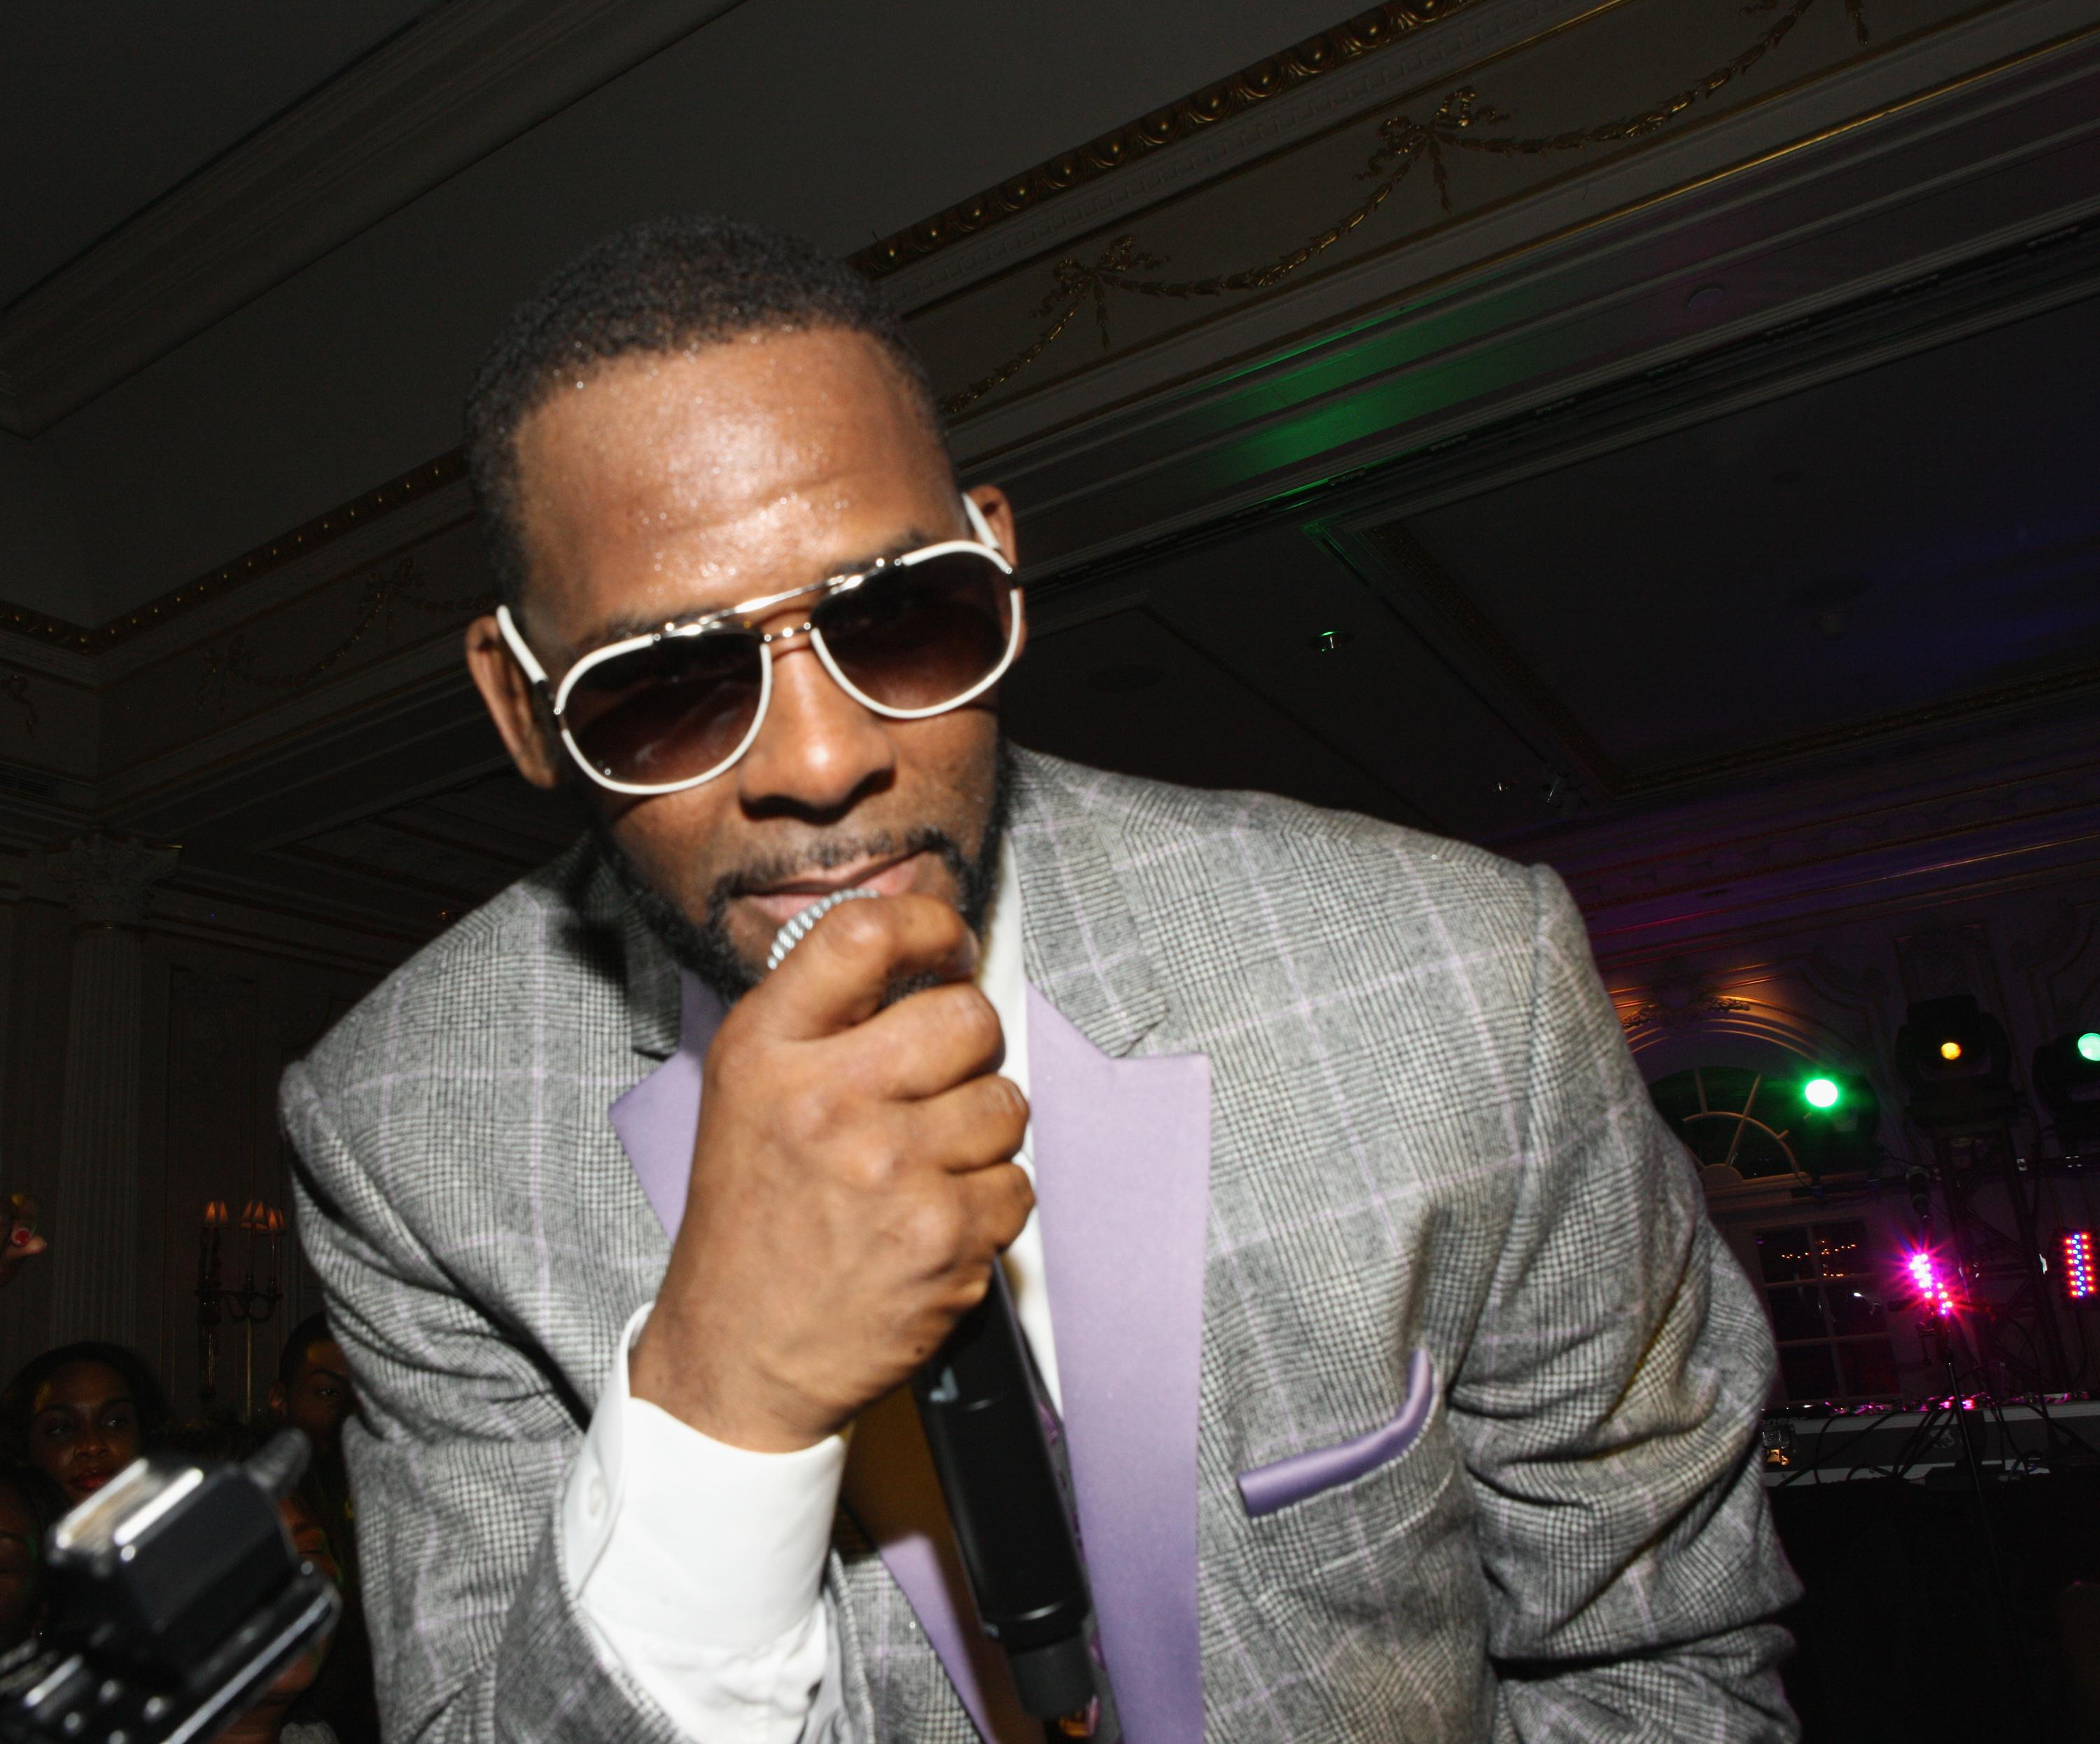 Made In Africa: By Arise Magazine - After Party - Spring 2012 Mercedes-Benz Fashion Week